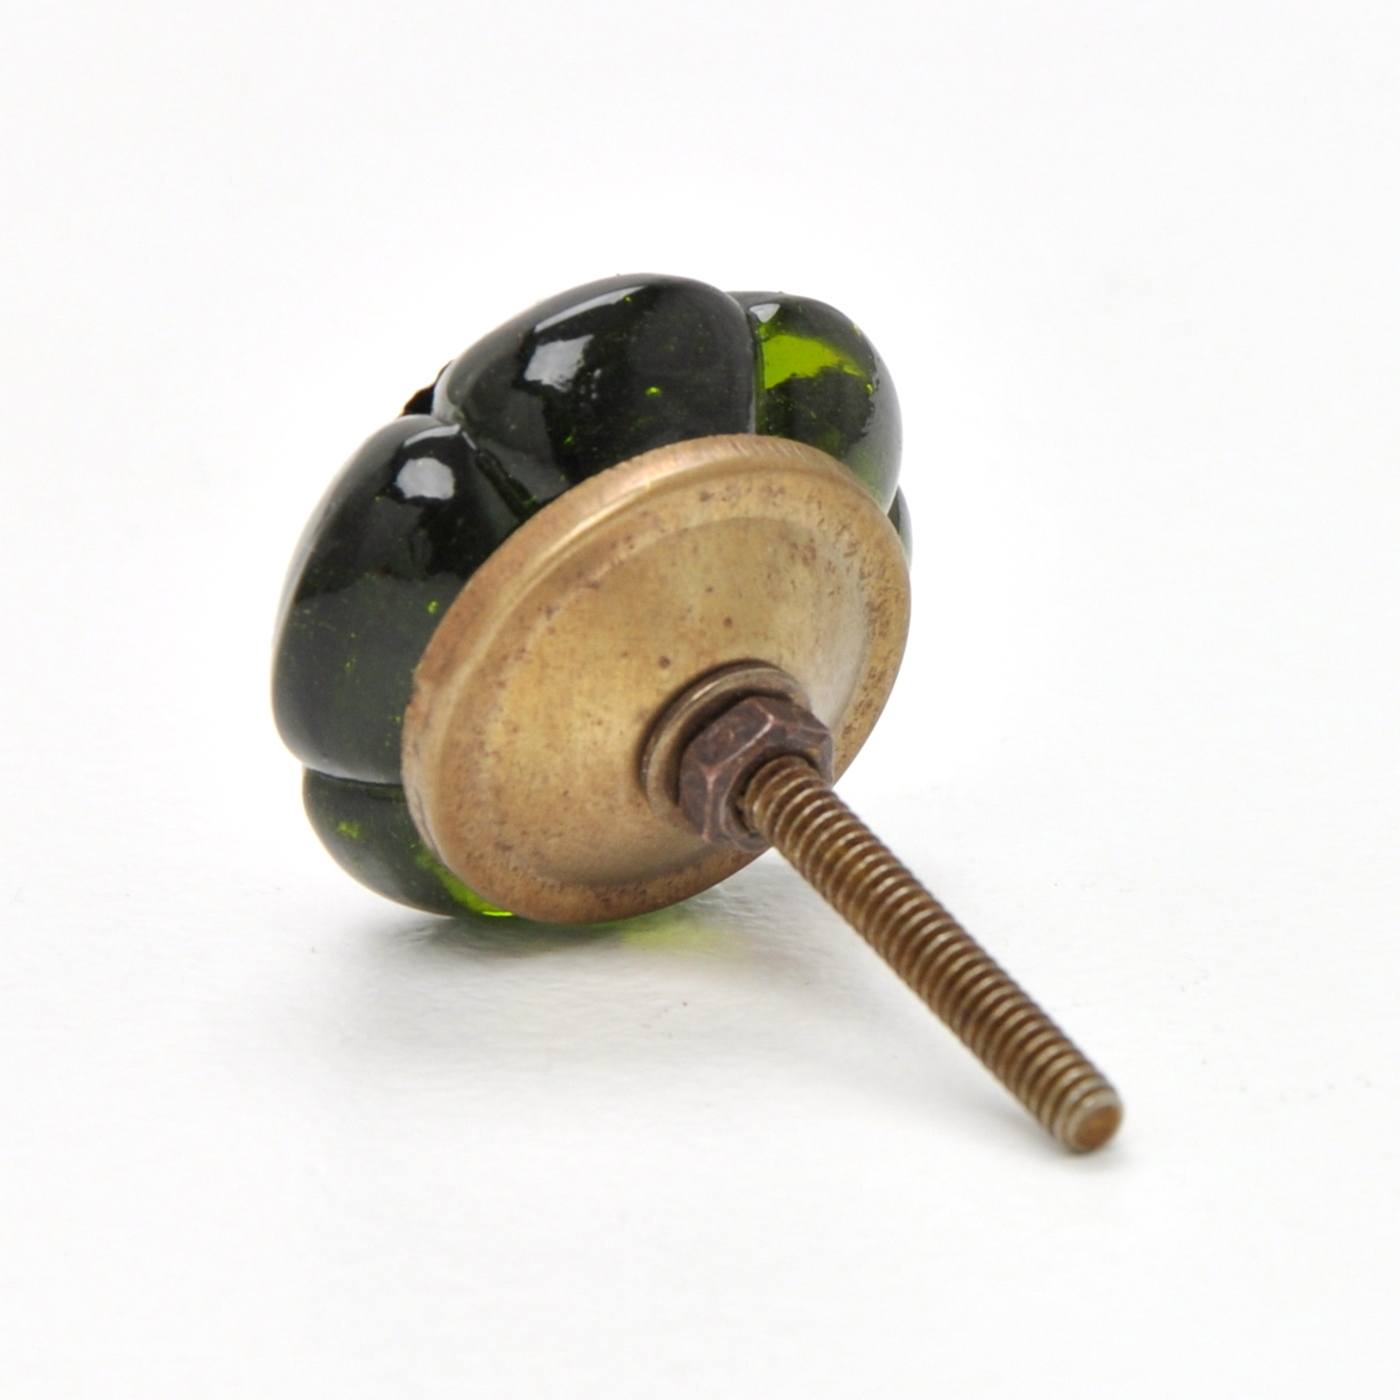 Green-Colour-Coloured-Knob-Pull-Handle-for-Cupboards-Doors-Cabinets-Drawer Indexbild 13